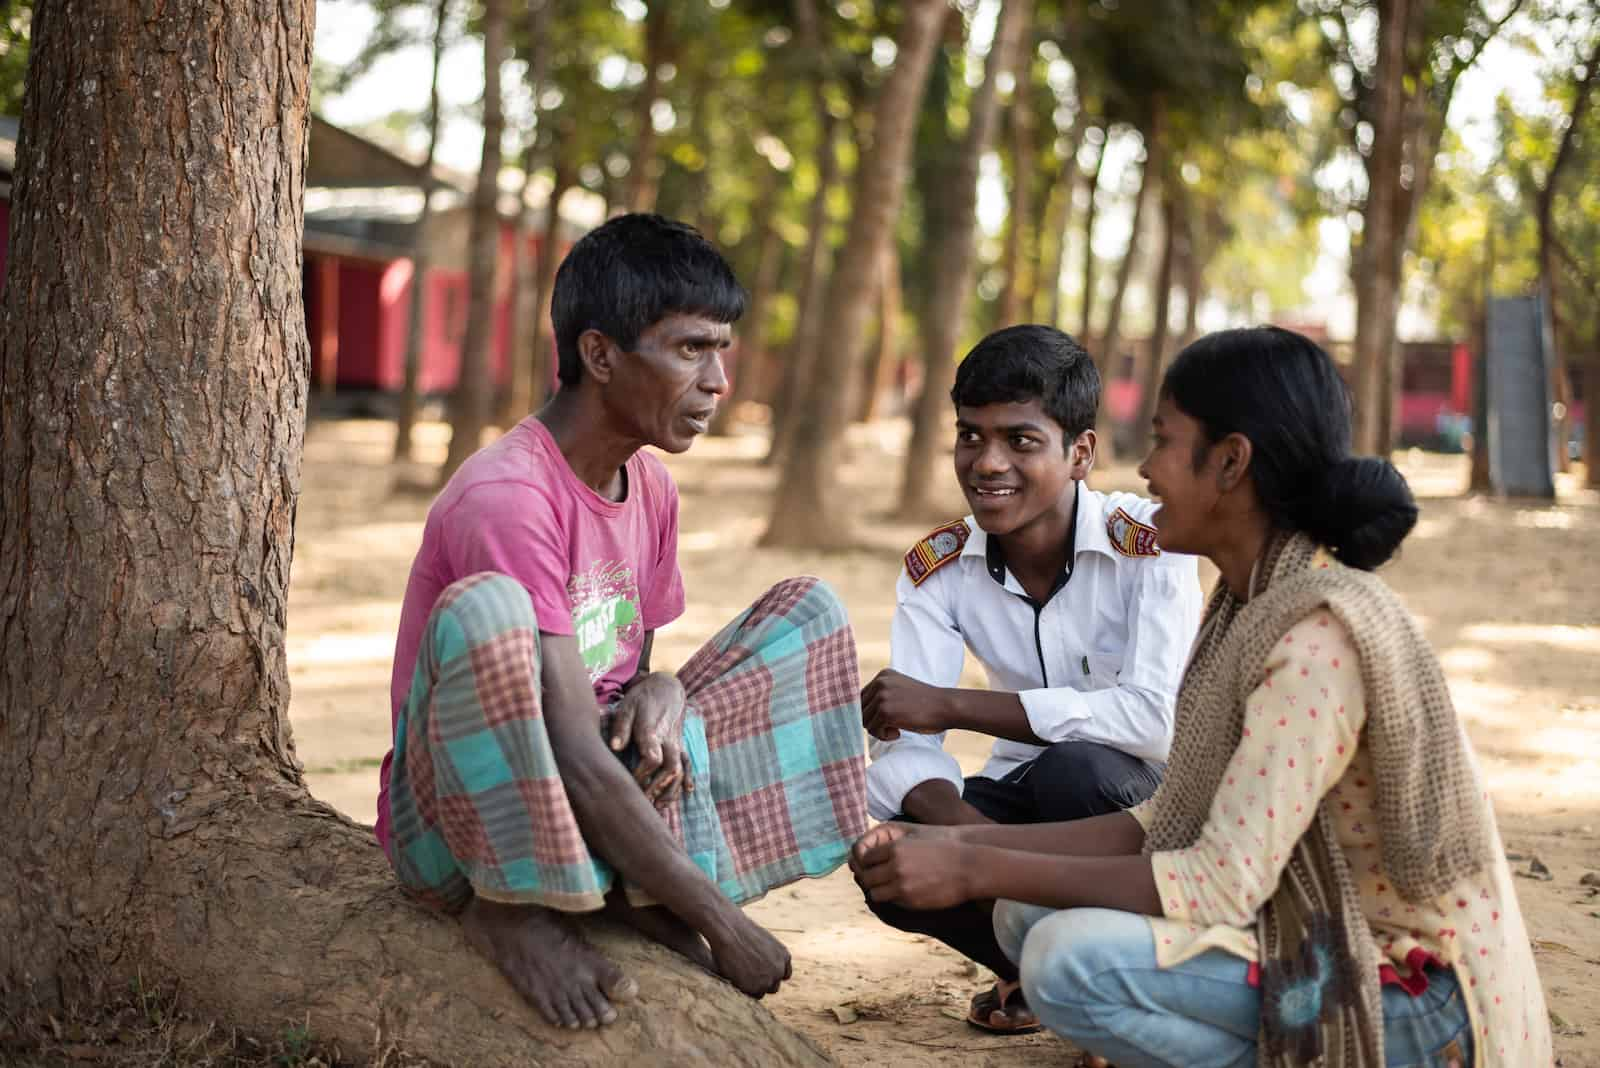 A man in a pink shirt and traditional plaid skirt kneels in front of a tree, faced by two smiling teenagers sitting on the ground.